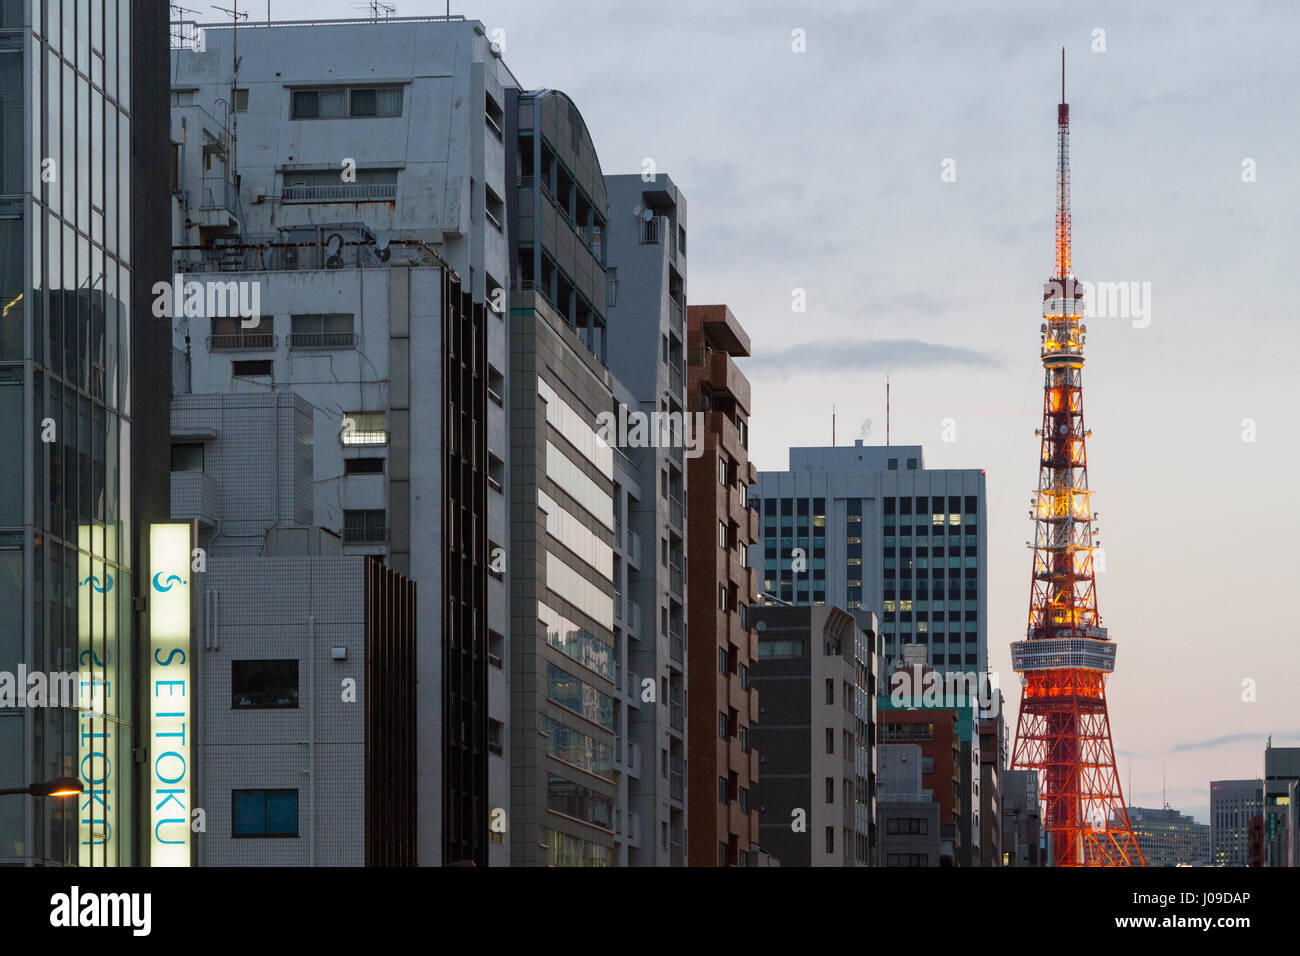 Tokyo Tower from Tamachi, Tokyo, Japan. Friday February 24th 2017 - Stock Image